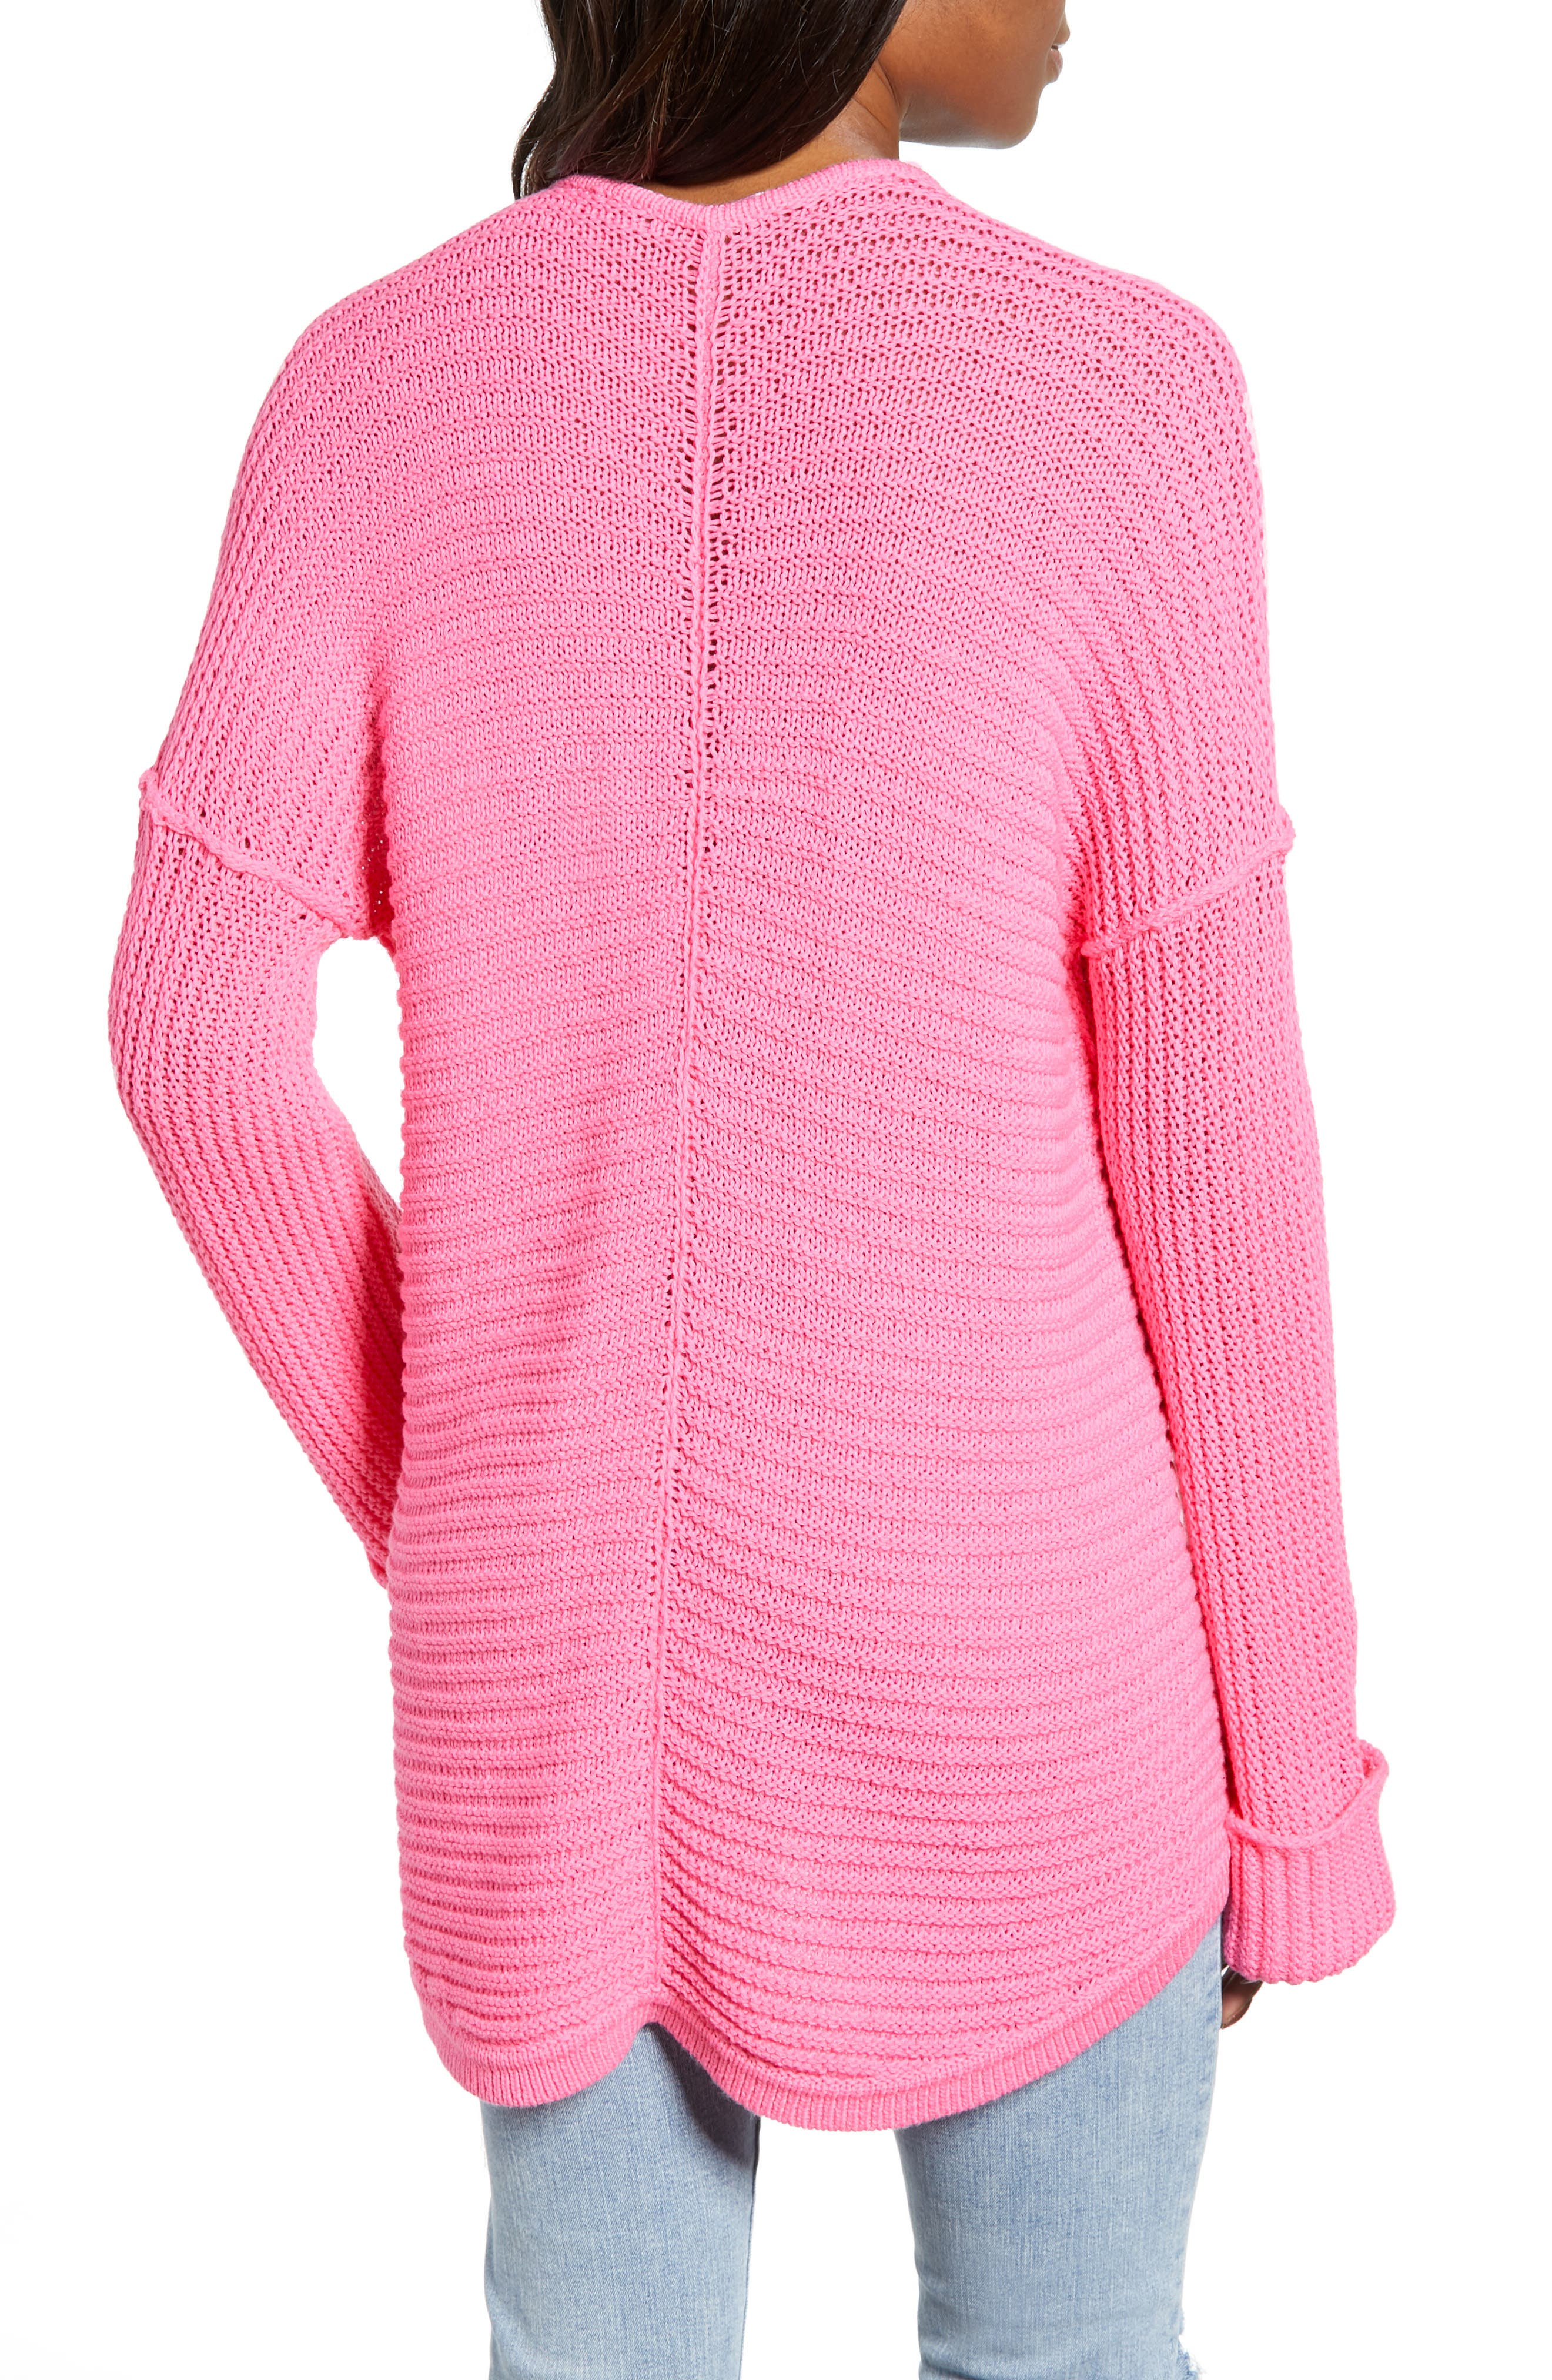 CASLON<SUP>®</SUP>, Cuffed Sleeve Sweater, Alternate thumbnail 2, color, PINK SACHET